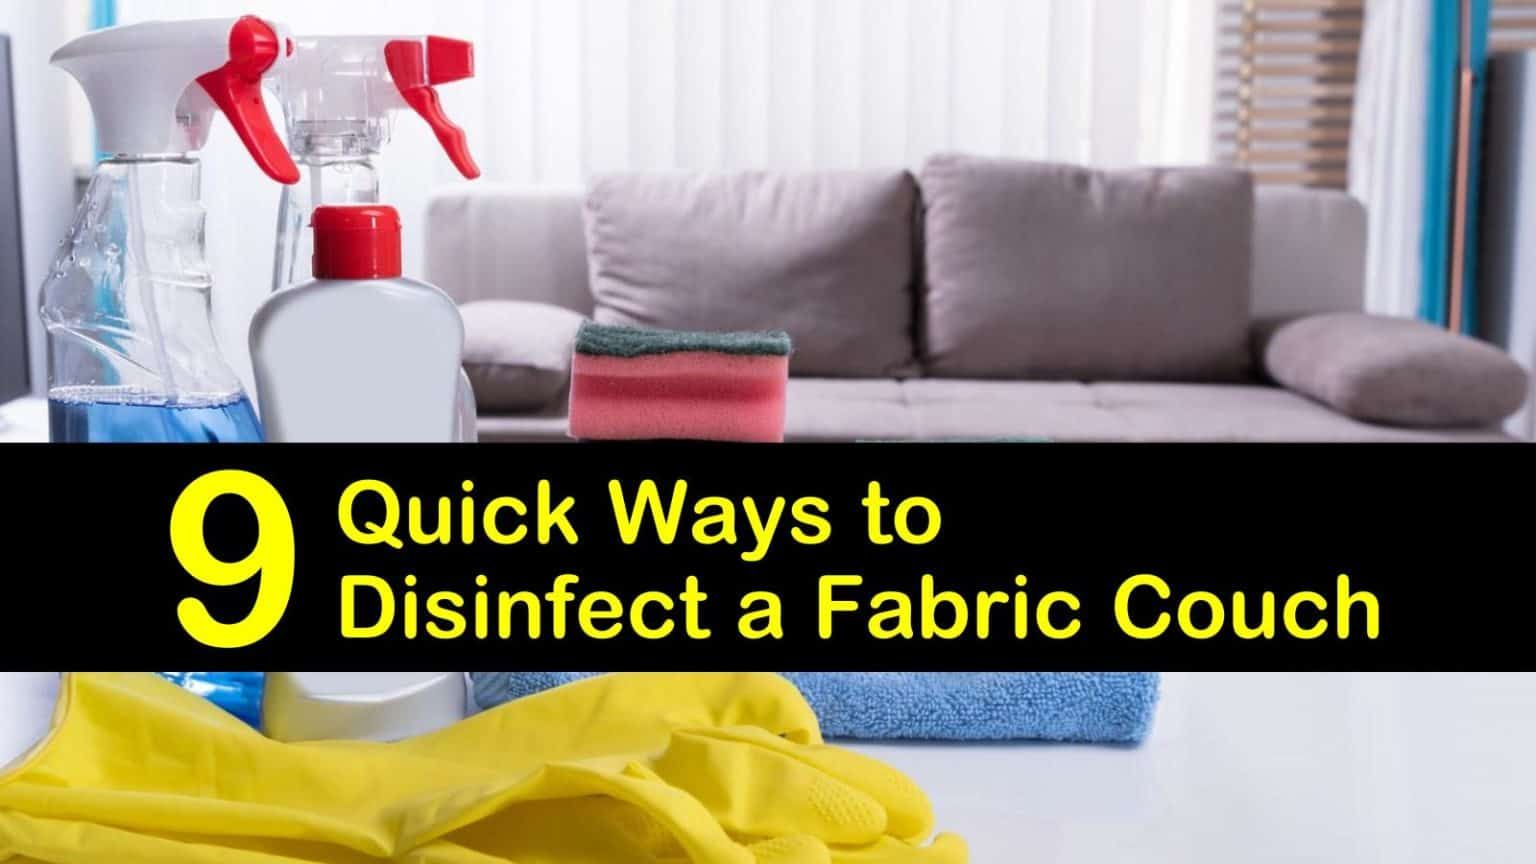 9 Quick Ways To Disinfect A Fabric Couch In 2020 With Images